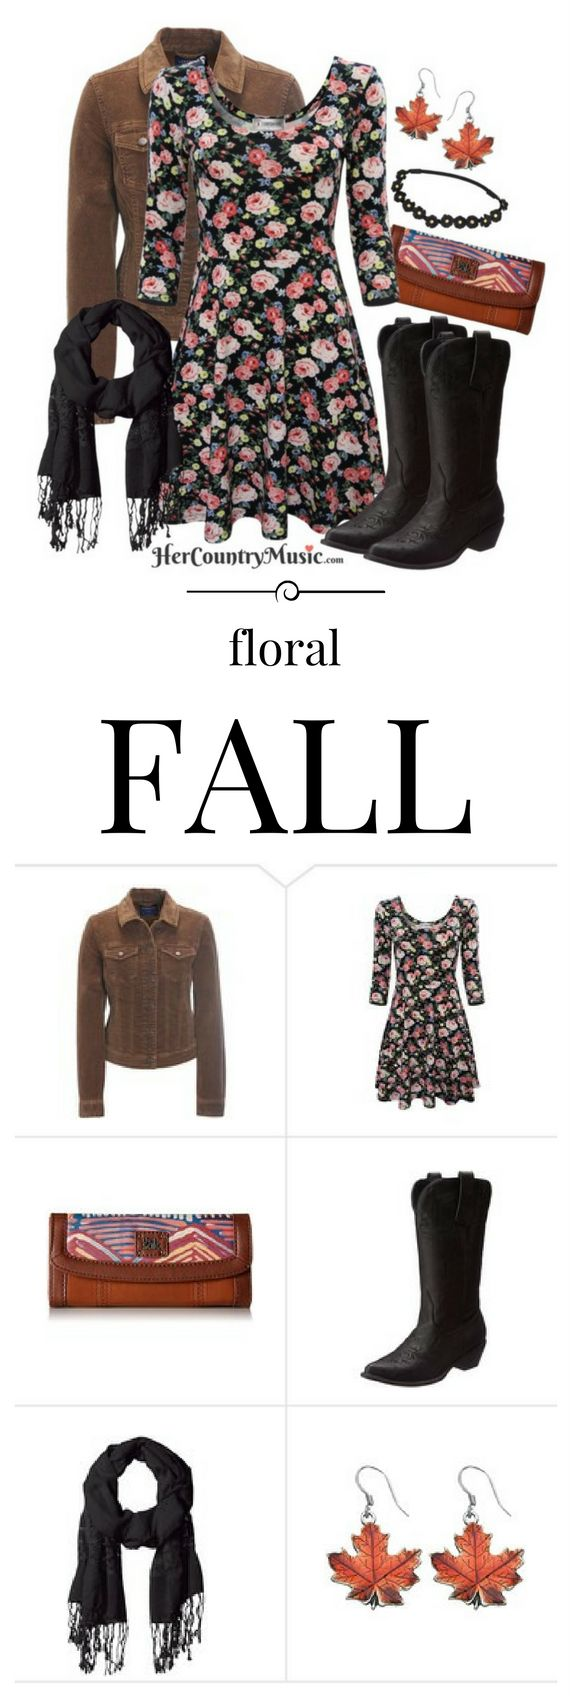 Country Music Outfit: Floral fall with black boots and fun floral dress.